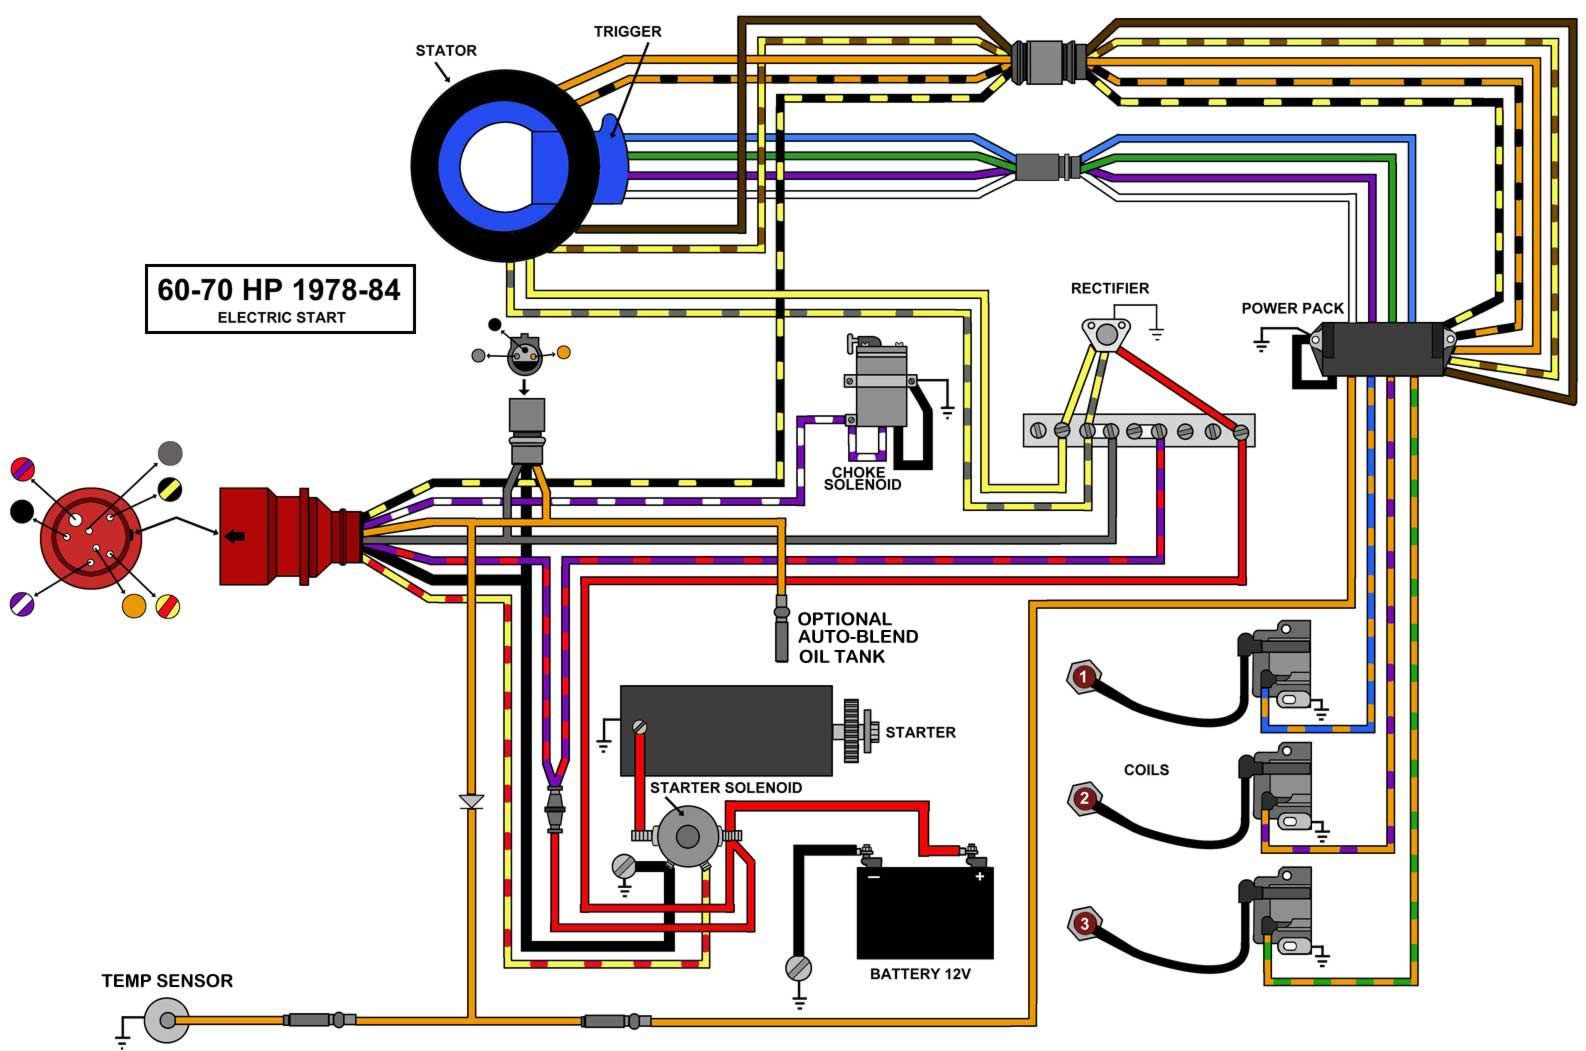 0fb40315561f28bdfa17d61a7ab6d6db image result for 70 hp johnson 1988 wiring to tachometer etc  at bakdesigns.co